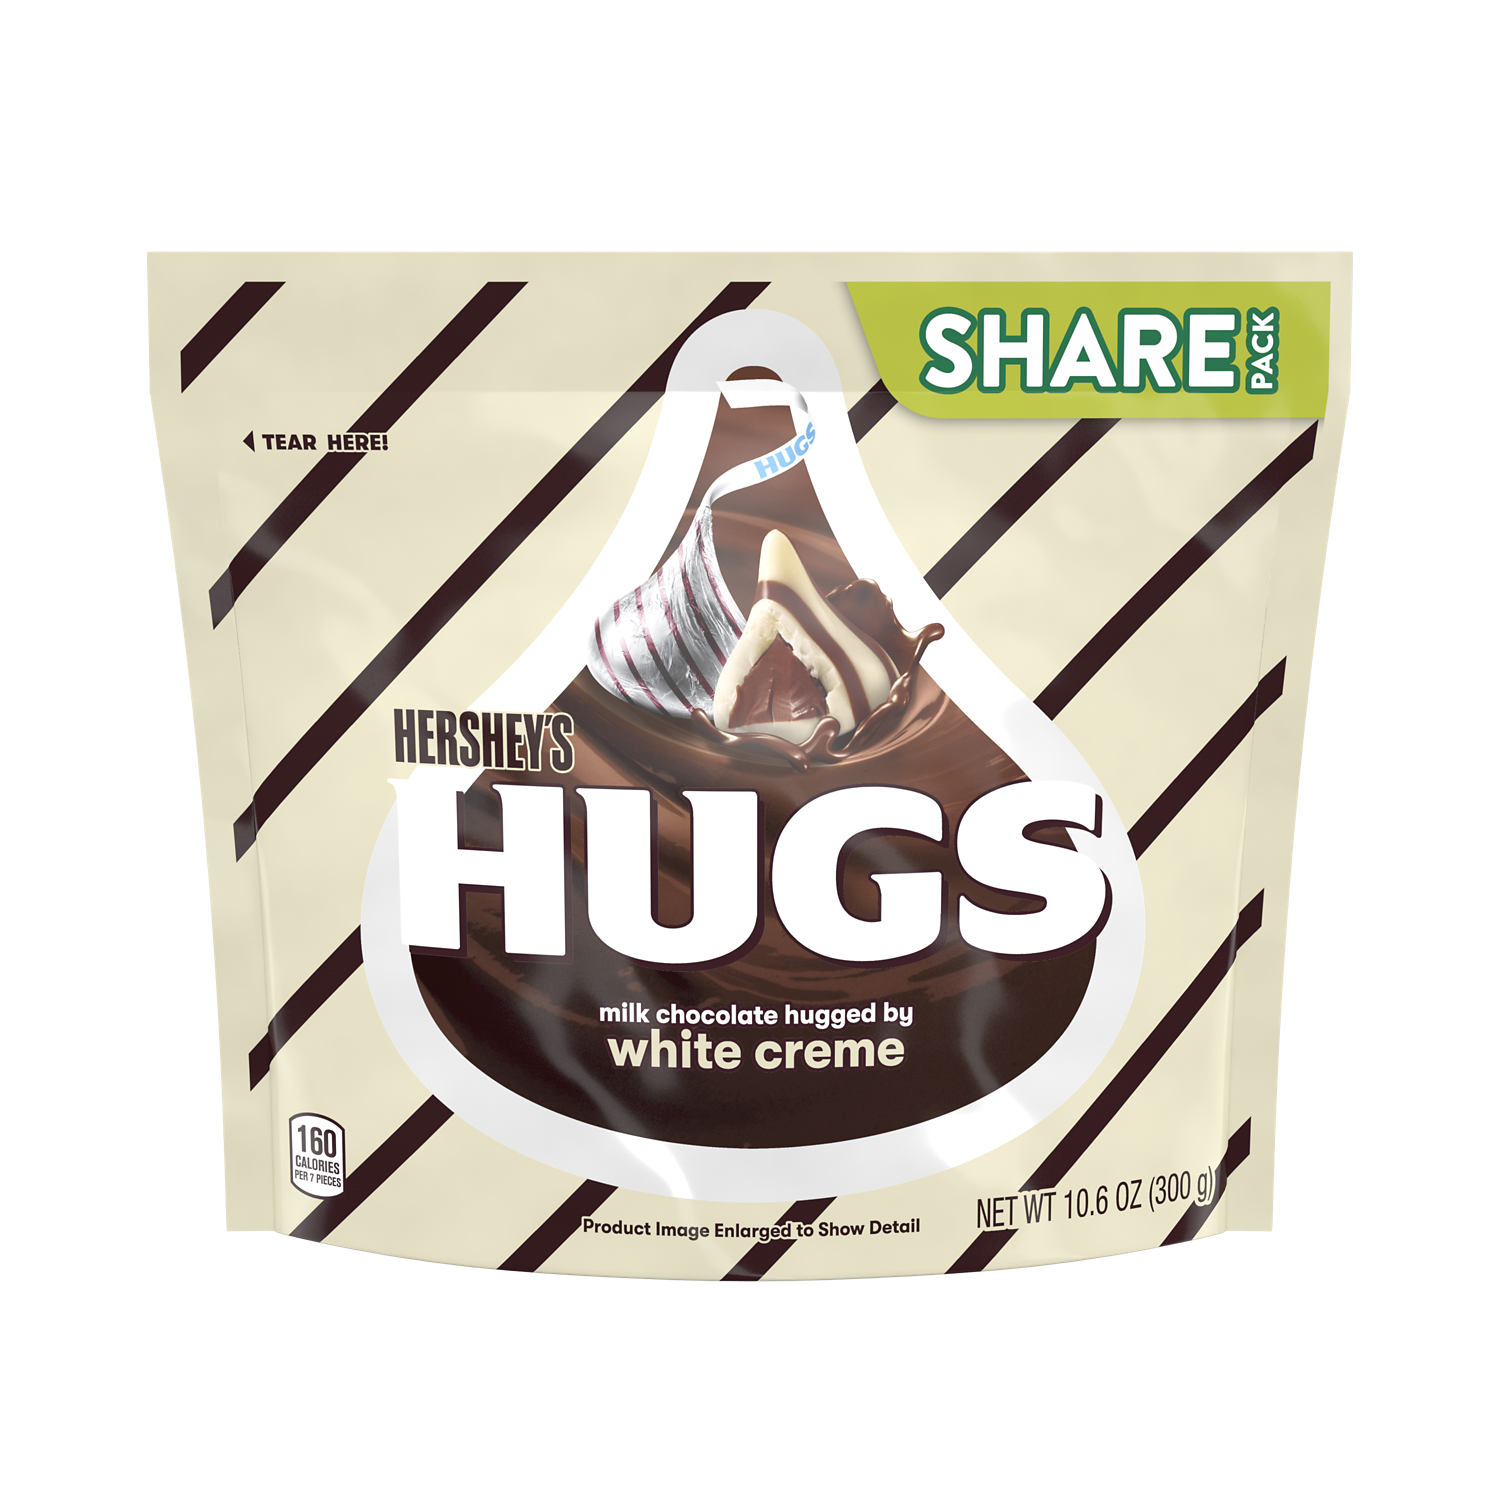 HERSHEY'S HUGS Milk Chocolate and White Creme Candy, 10.6 oz pack - Front of Package